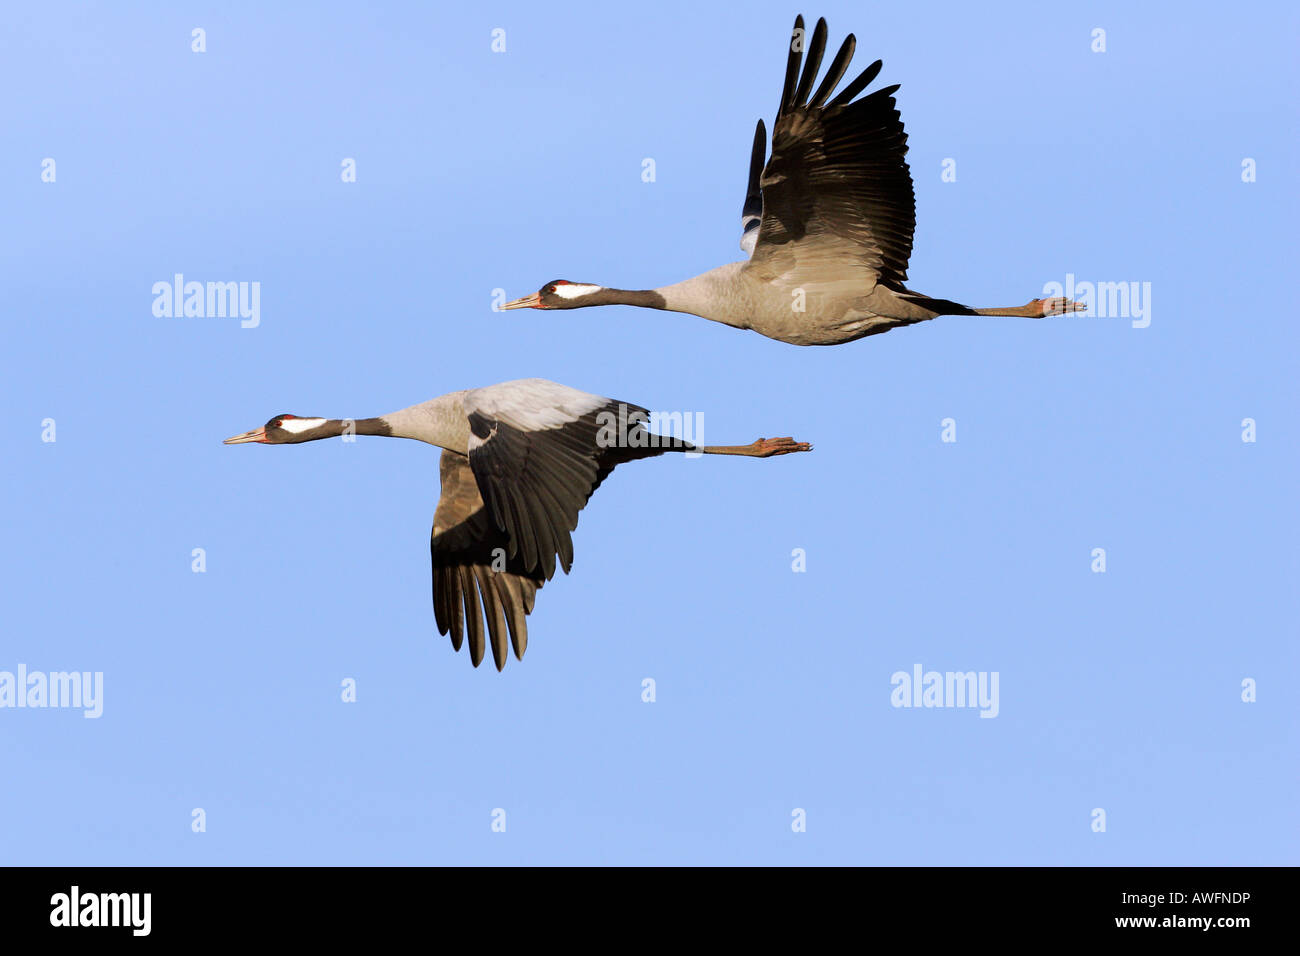 Couple of flying common cranes (Grus grus) - Lake Hornborga, Sweden, Europe, Stock Photo